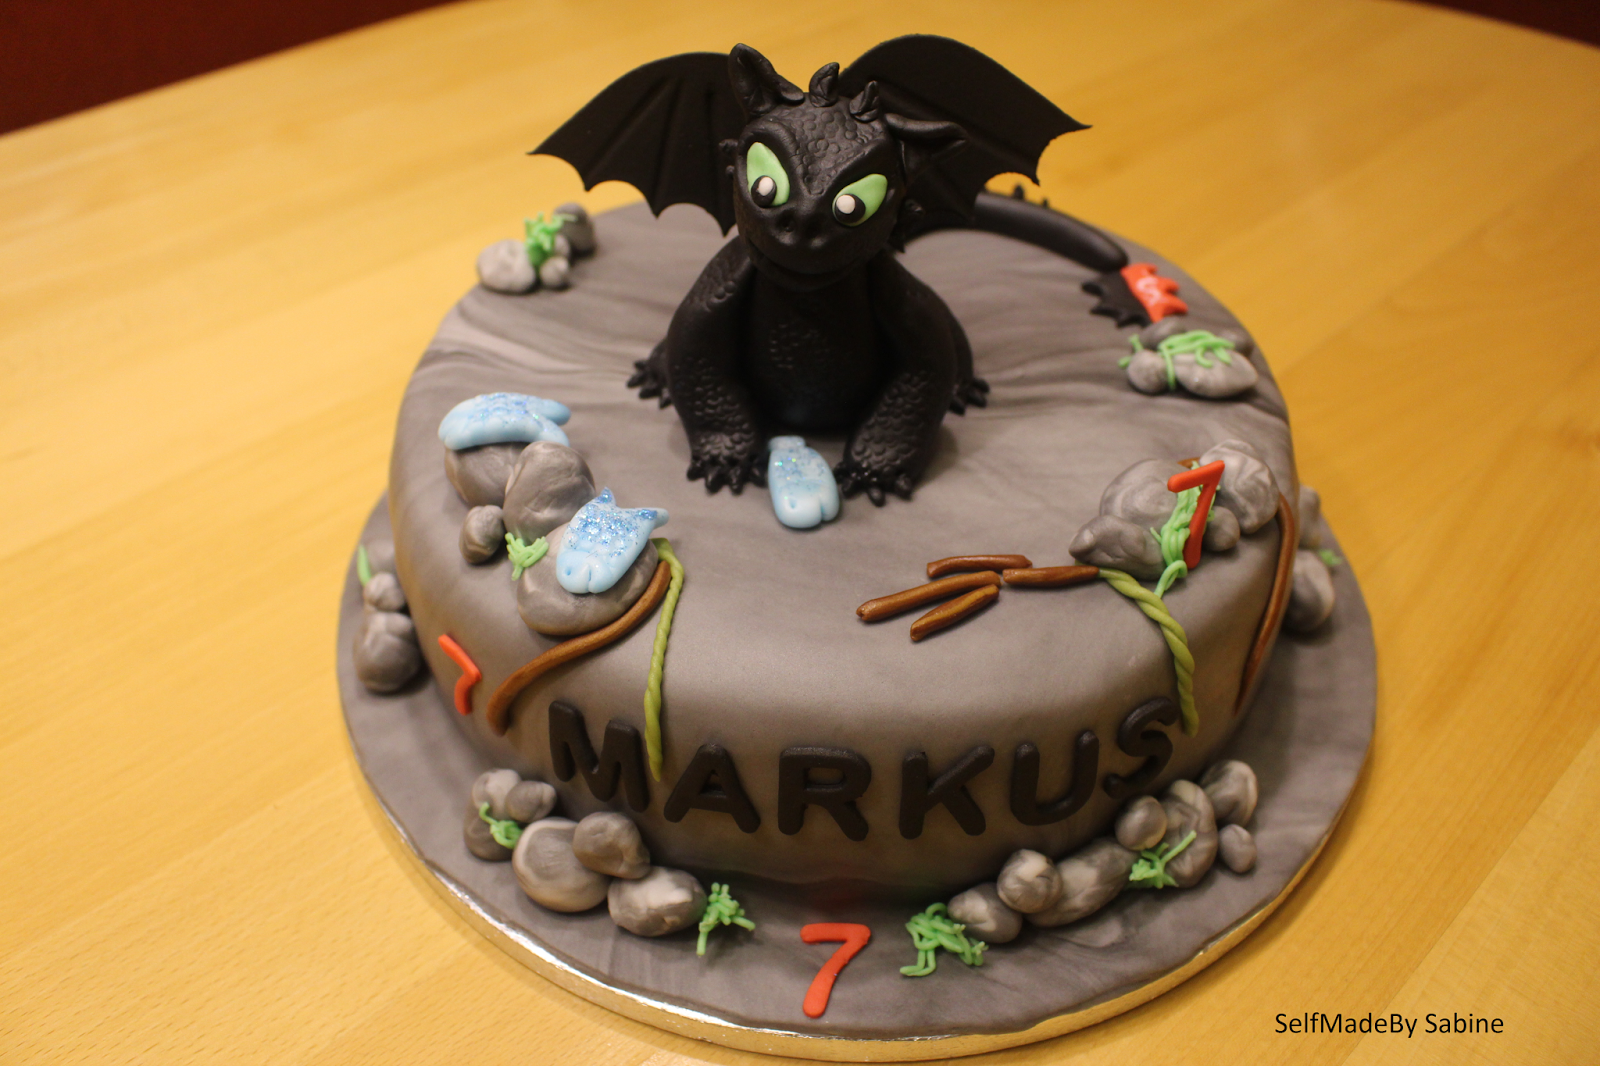 SelfMadeby Sabine: Ohnezahn Torte - How to train your dragon